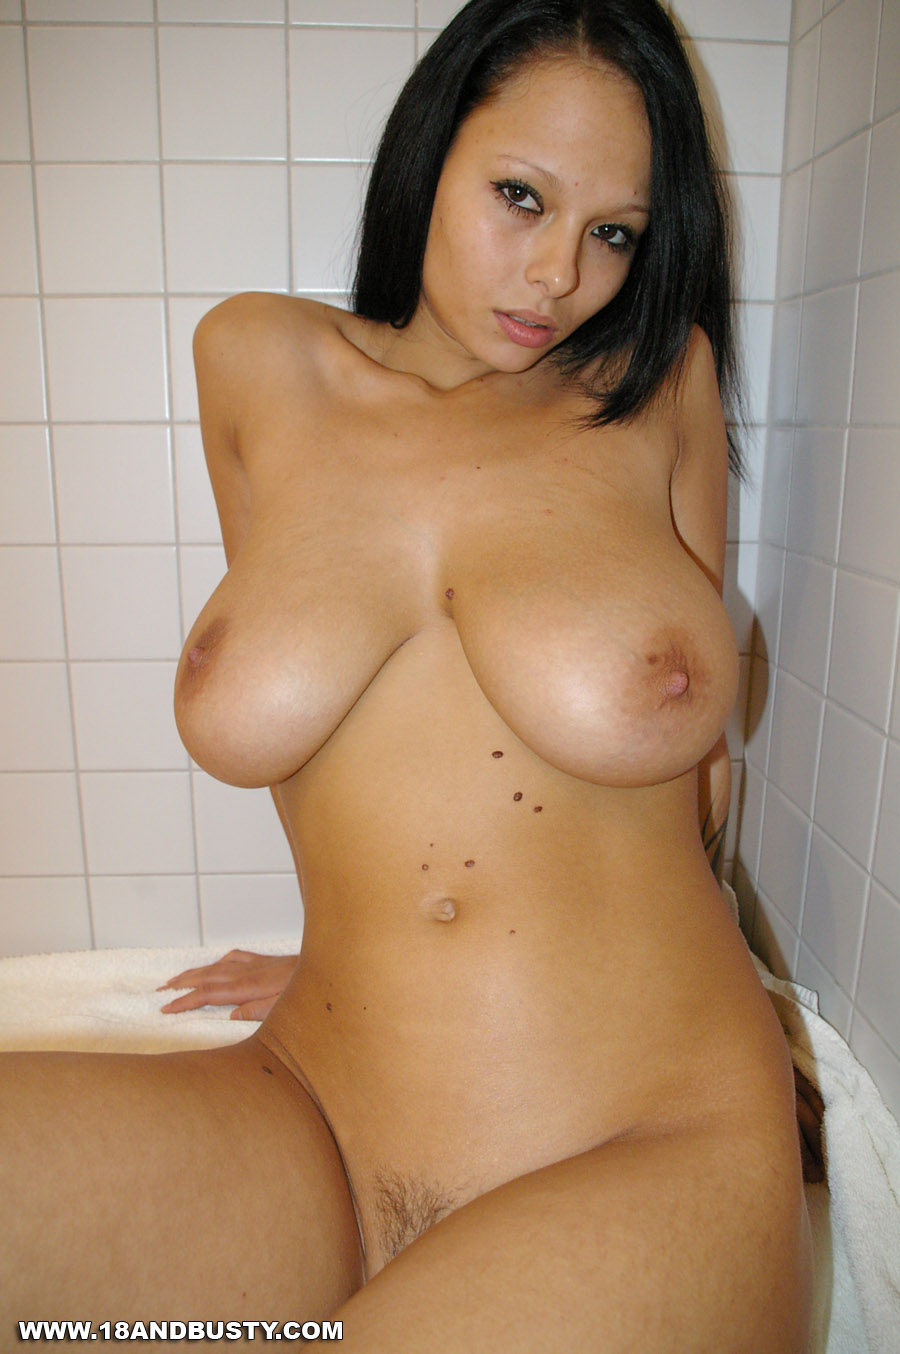 girls with big boobs in the shower